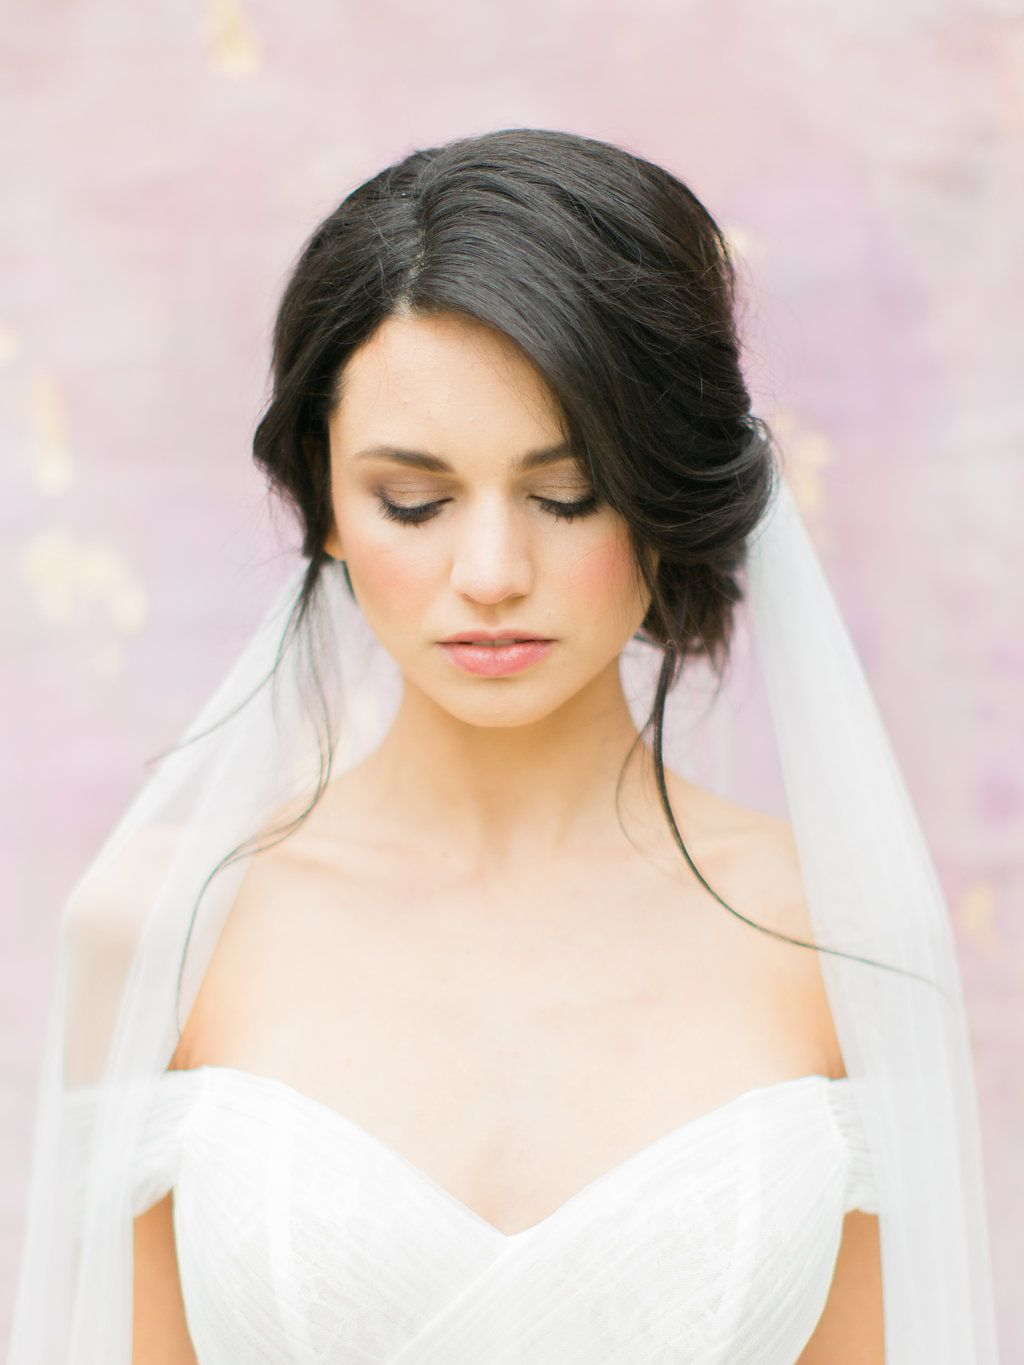 get 8 amazing wedding hair trial tips and tricks from